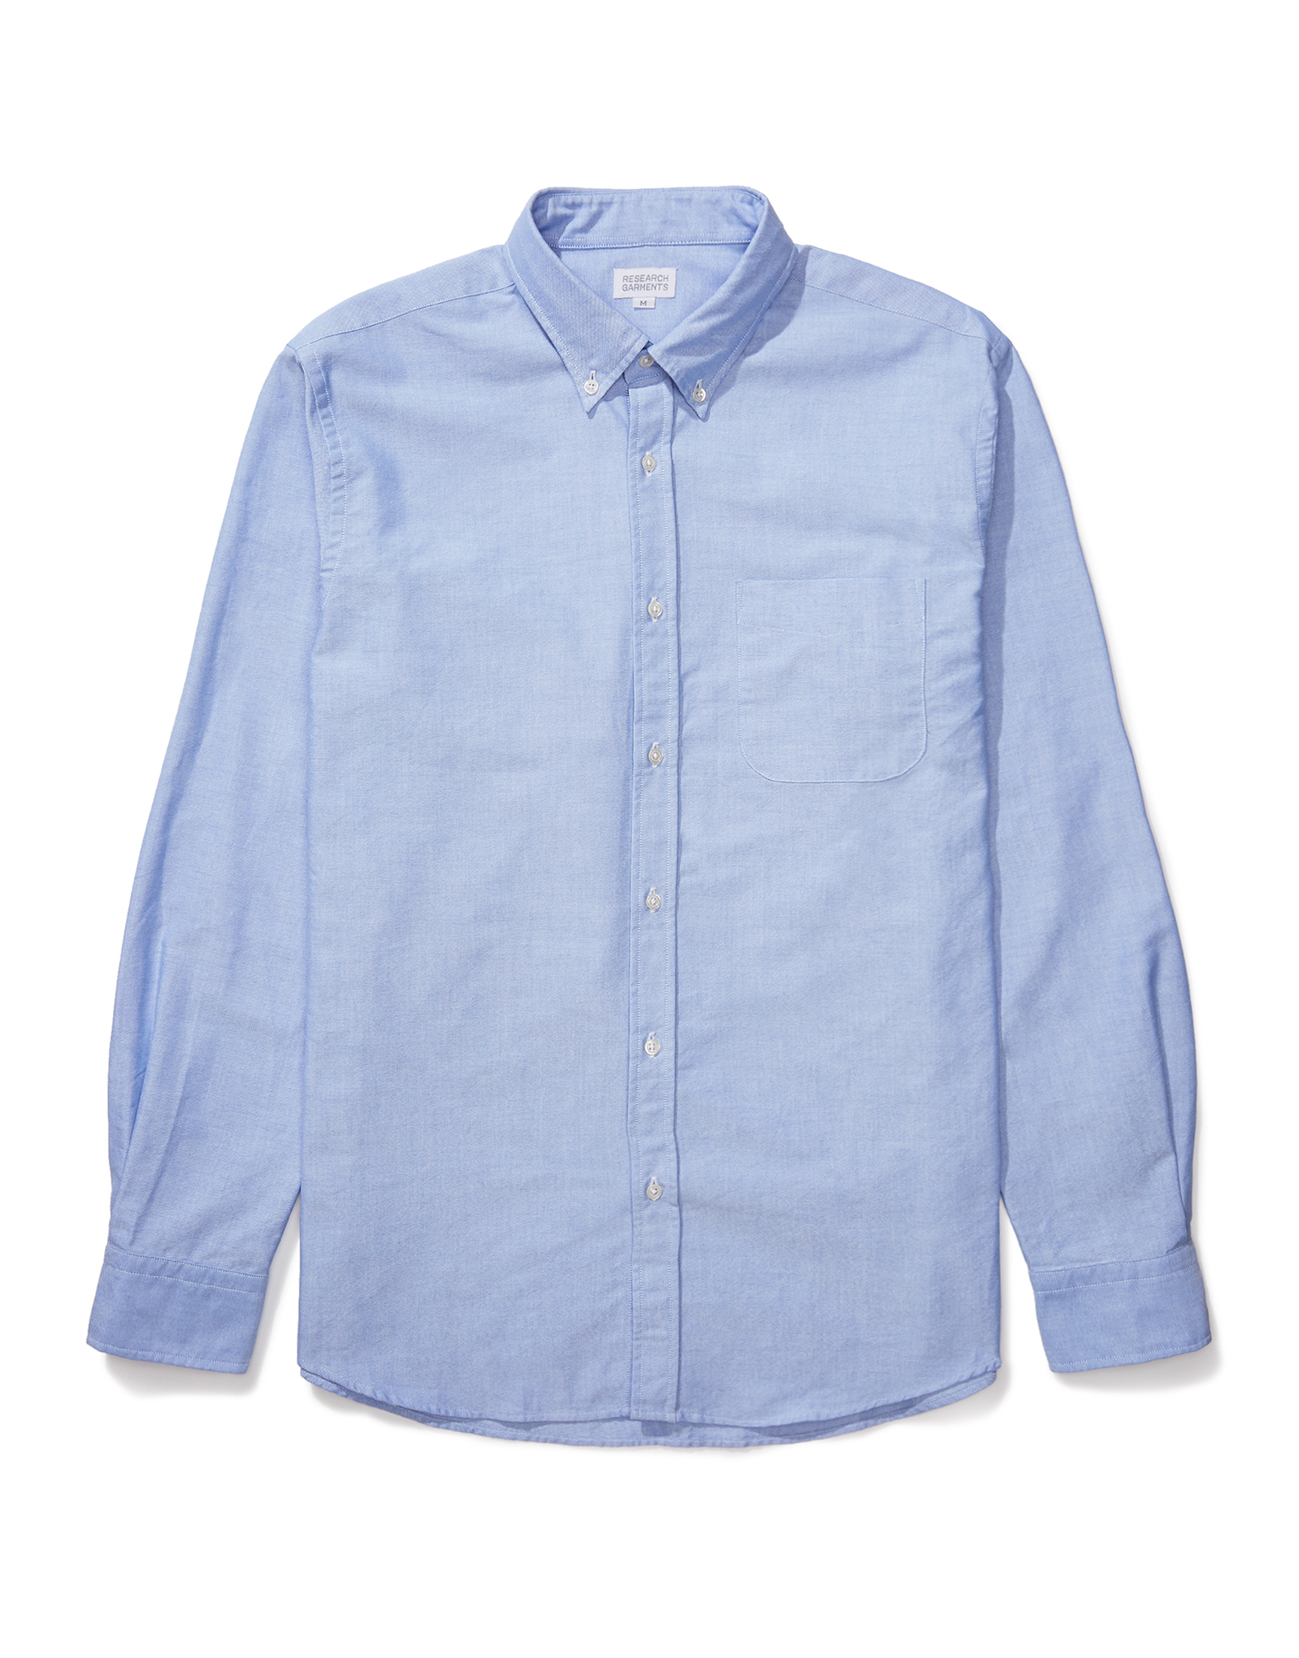 Research Garments Blue The Perfect Oxford Shirt